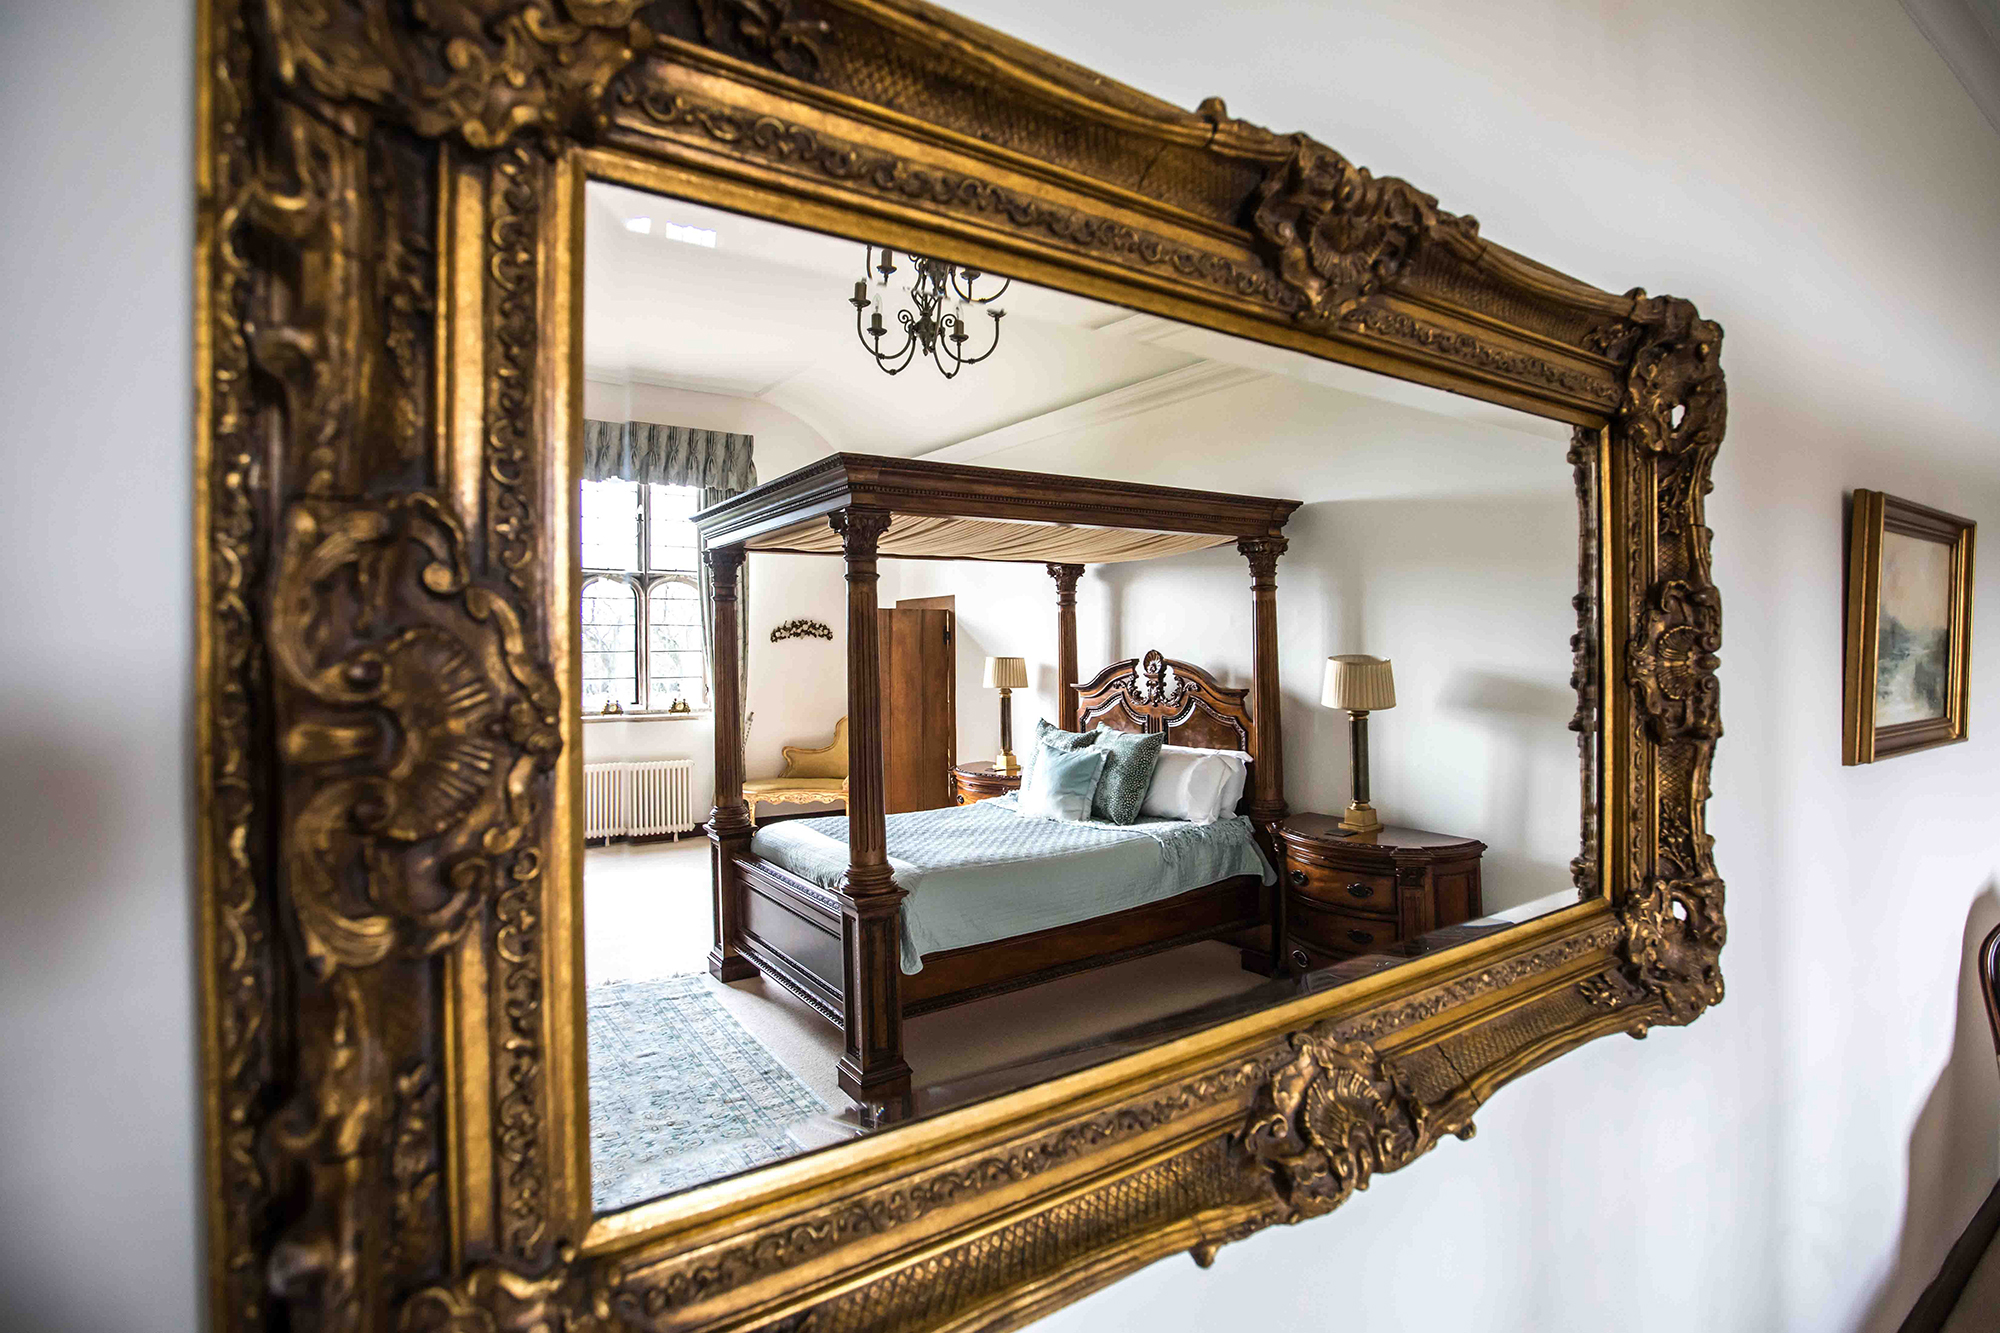 Bed and Bedroom in a mirror at Hengrave Hall